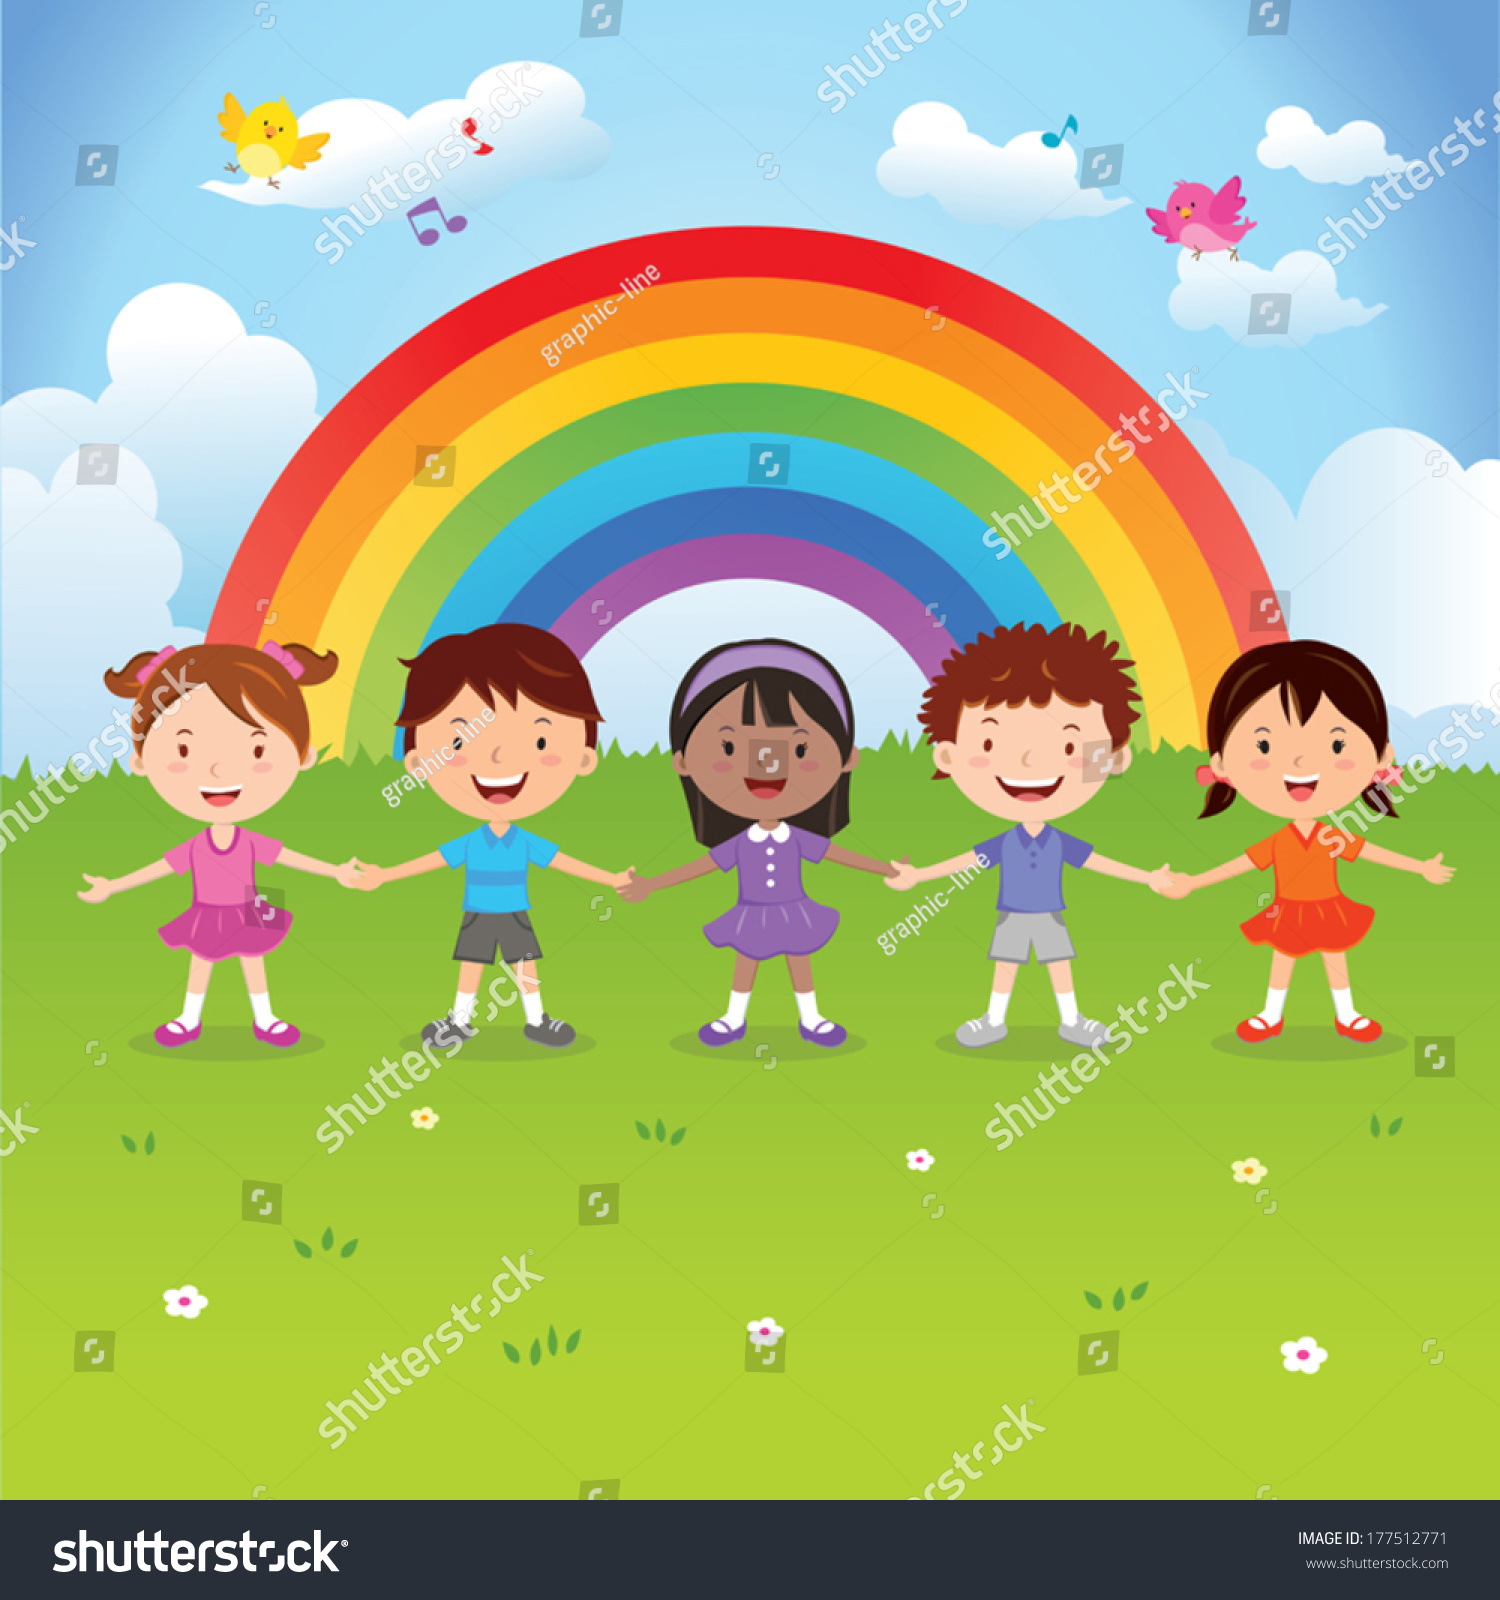 Diverse Children Under Rainbow Vector Illustration 177512771